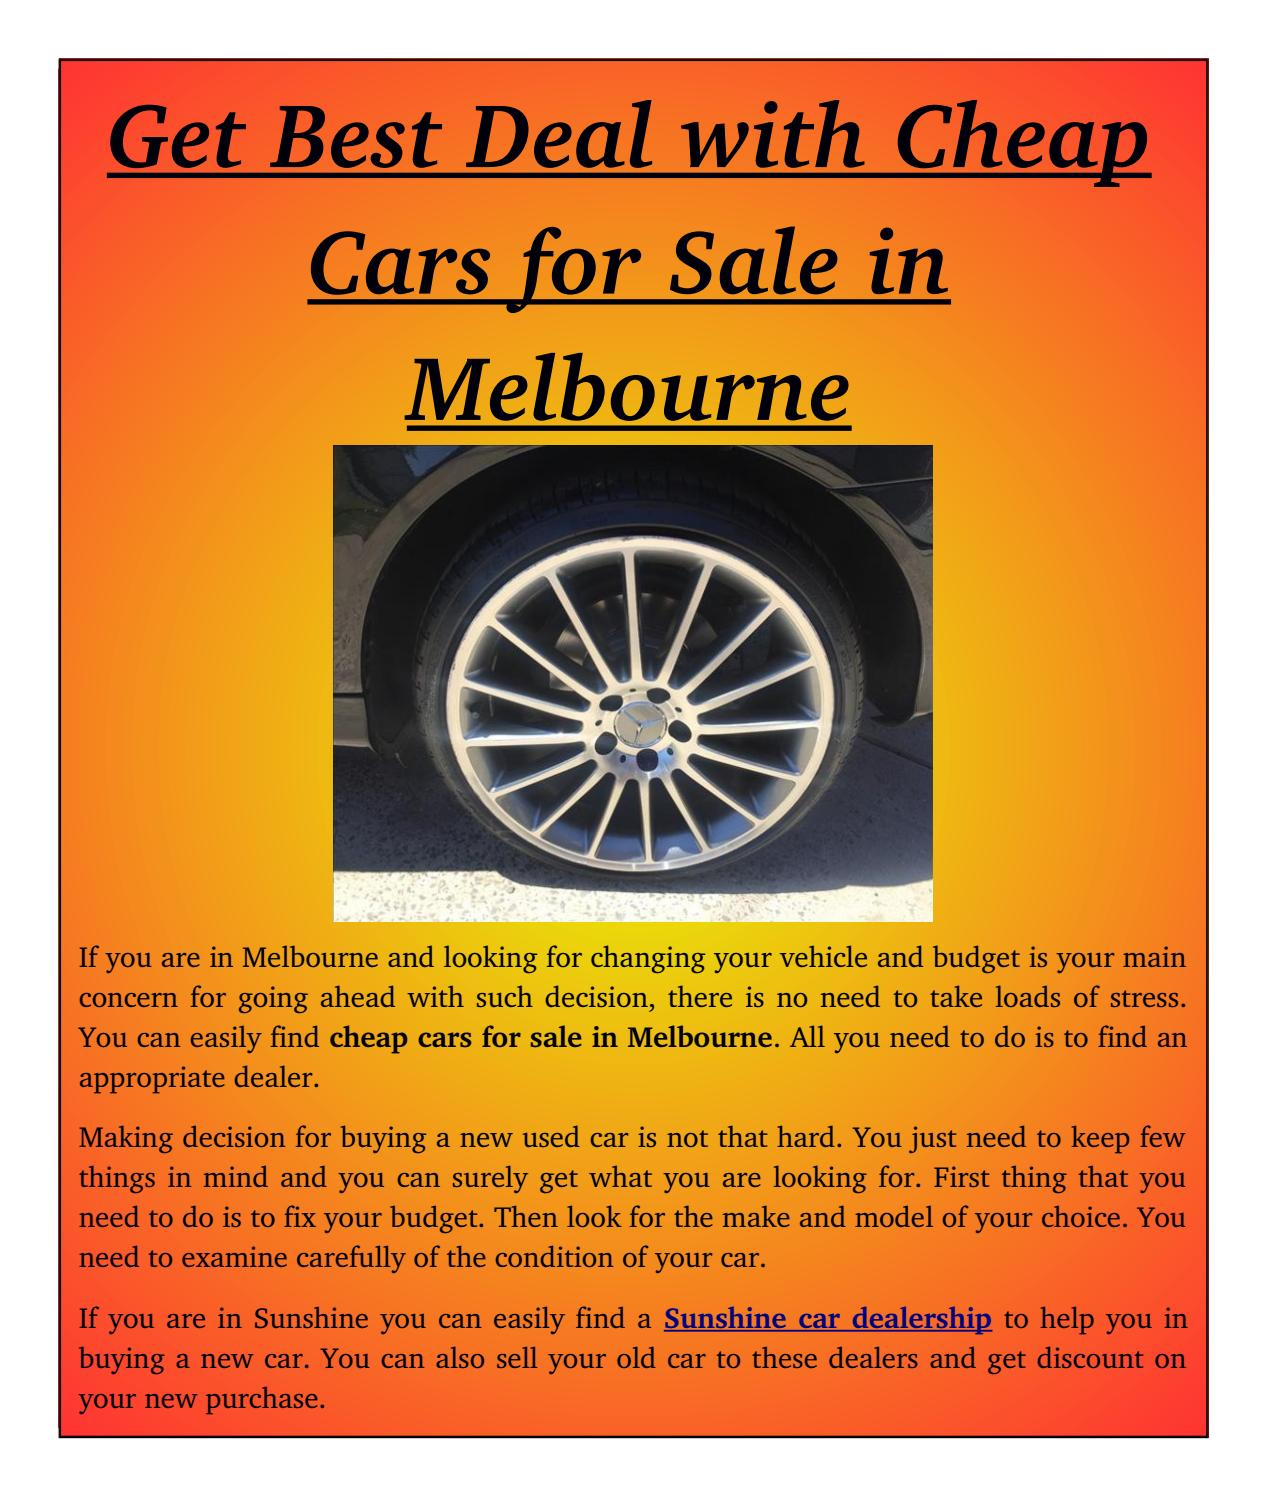 Get best deal with cheap cars for sale in melbourne by Buy Used Cars ...